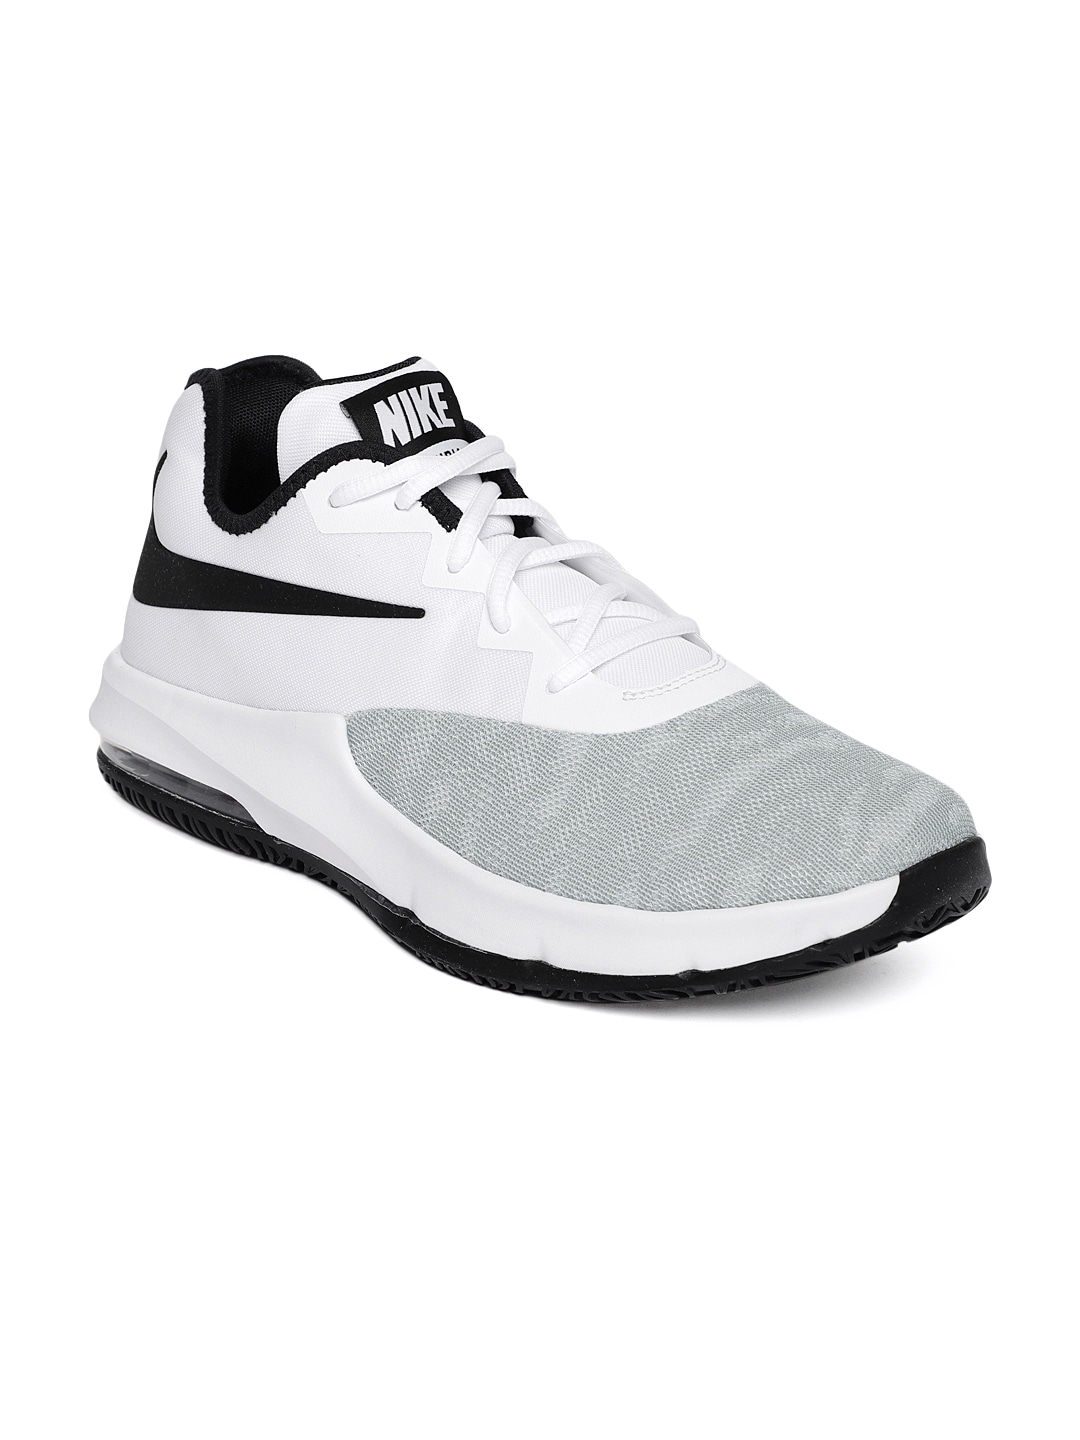 f8b383fb1f5 Nike Basketball Shoes